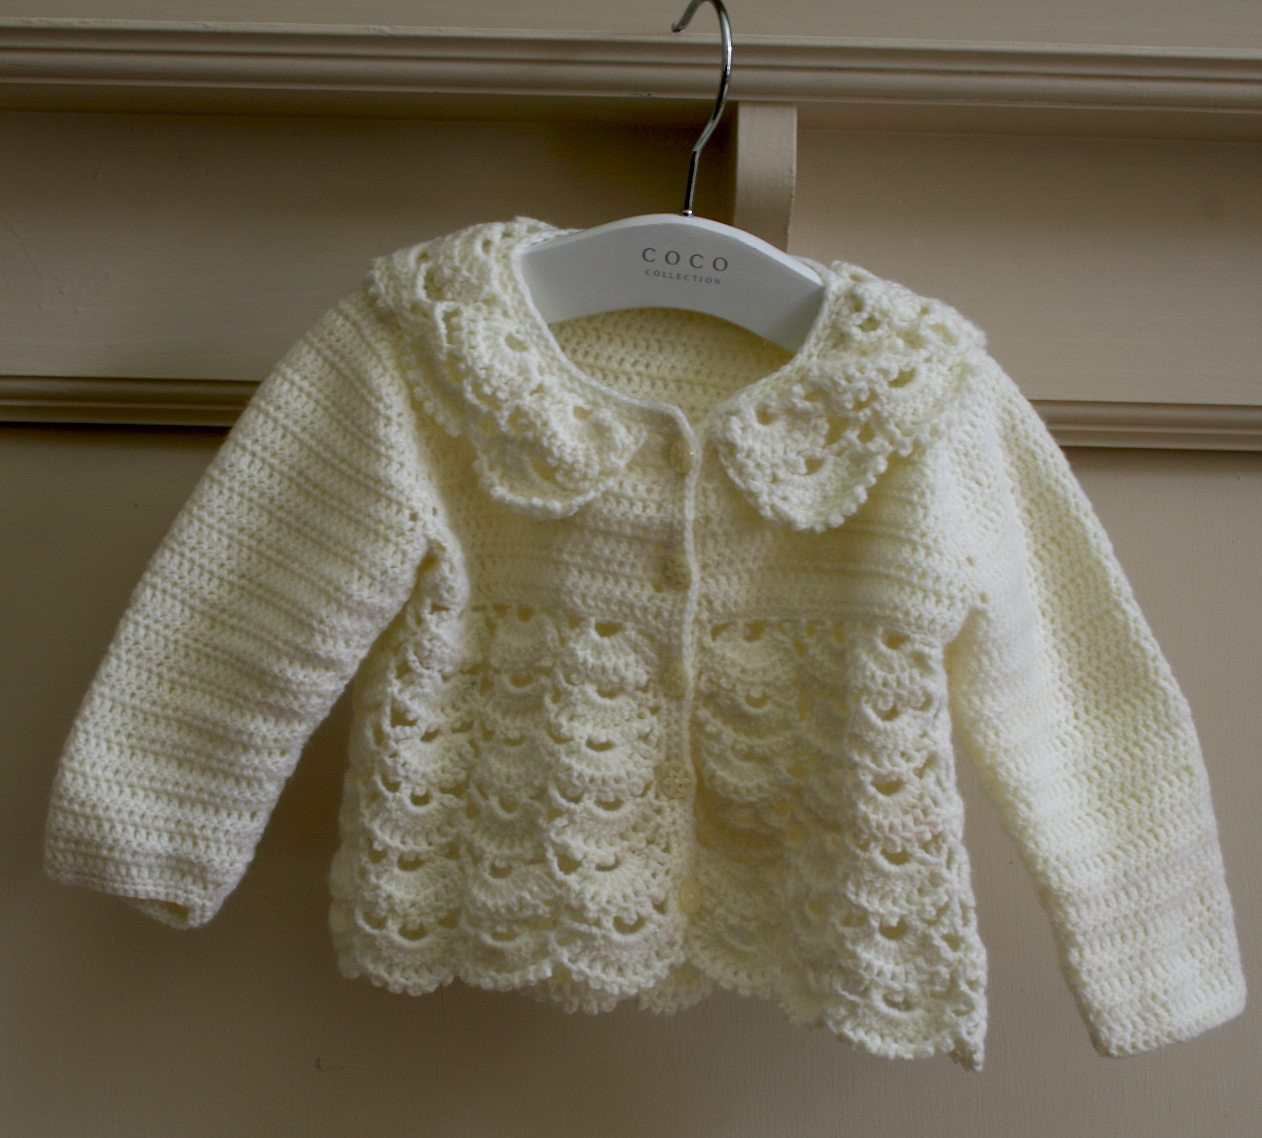 Crochet Baby Cardigan Awesome Crocheted Lacy Baby Cardigan Of Amazing 49 Pics Crochet Baby Cardigan